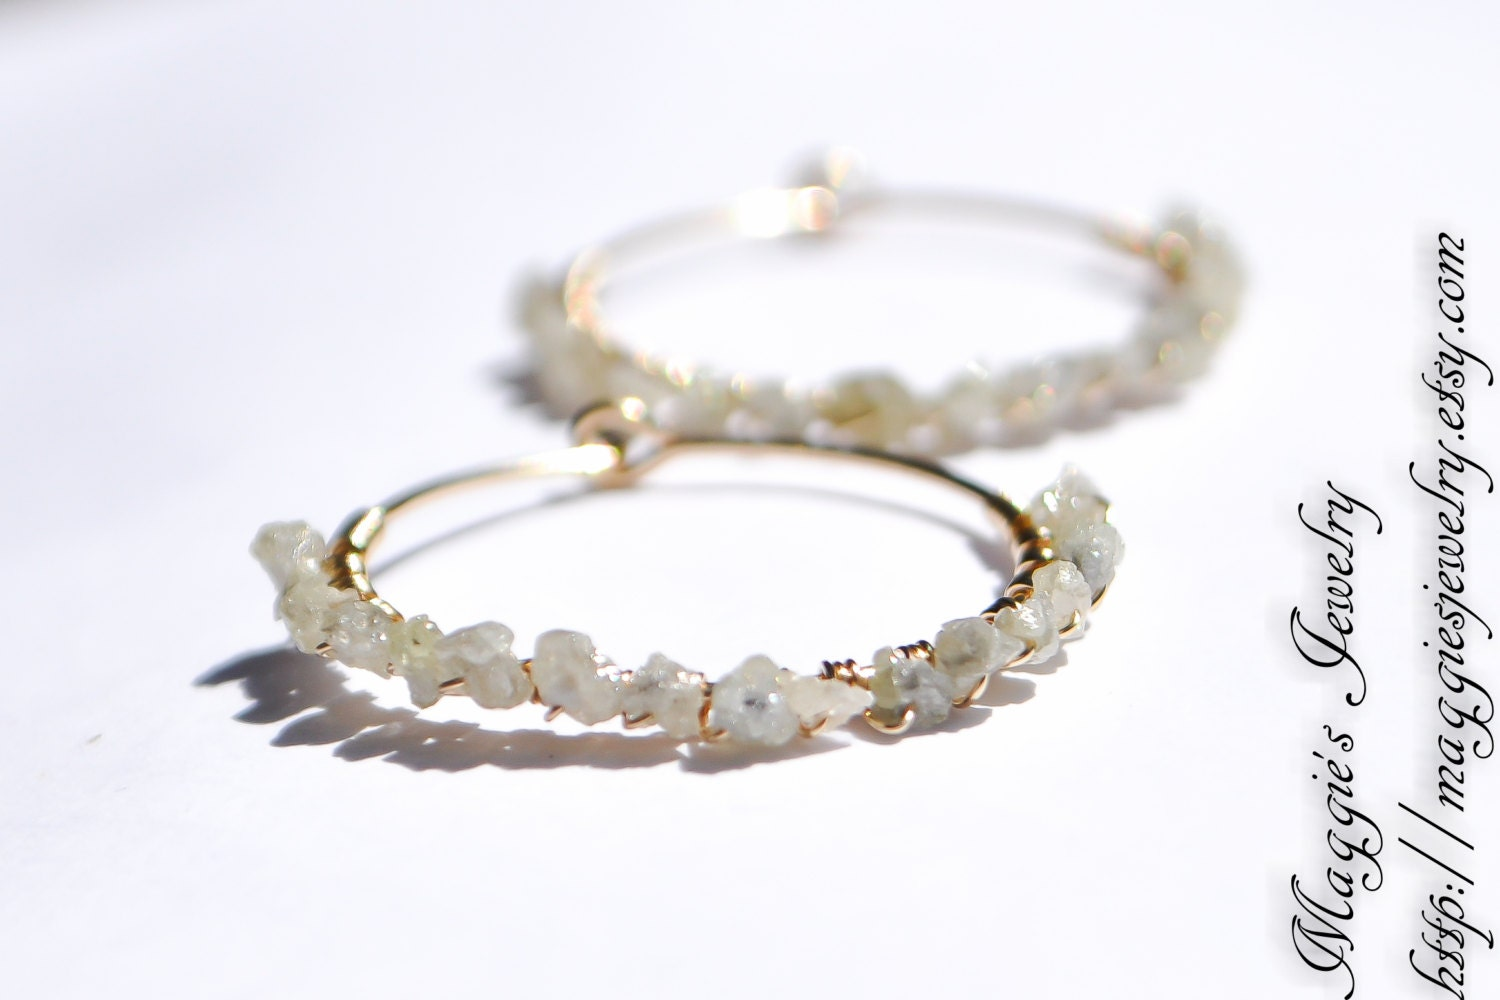 Diamond Earrings, Raw Diamond Hoops, Rough Diamond Earrings, Dainty, Genuine Diamond, 14k gold filled, Hoop Earrings - maggiesjewelry